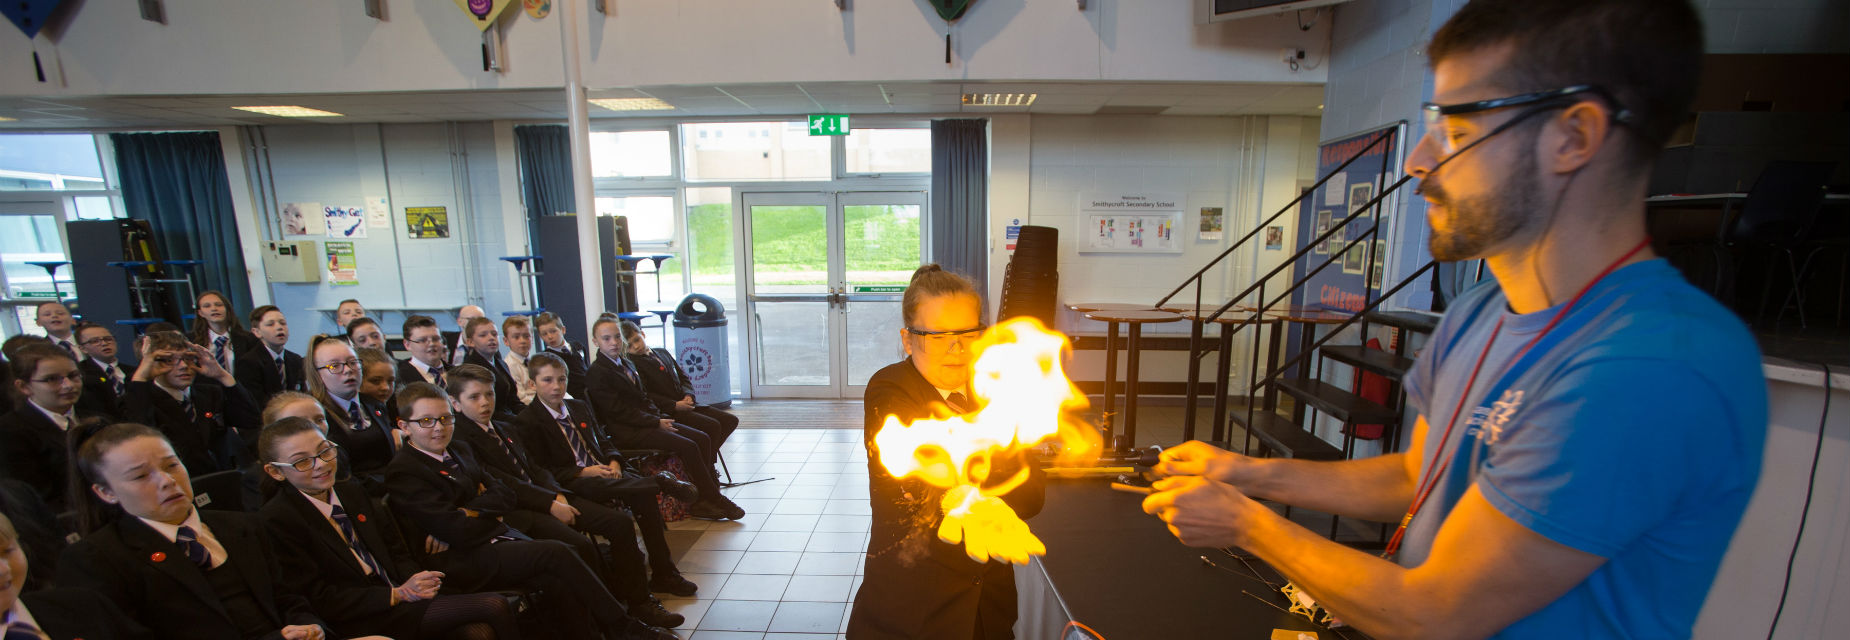 A science communicator and pupil produce a flame in an experiment in front of an audience